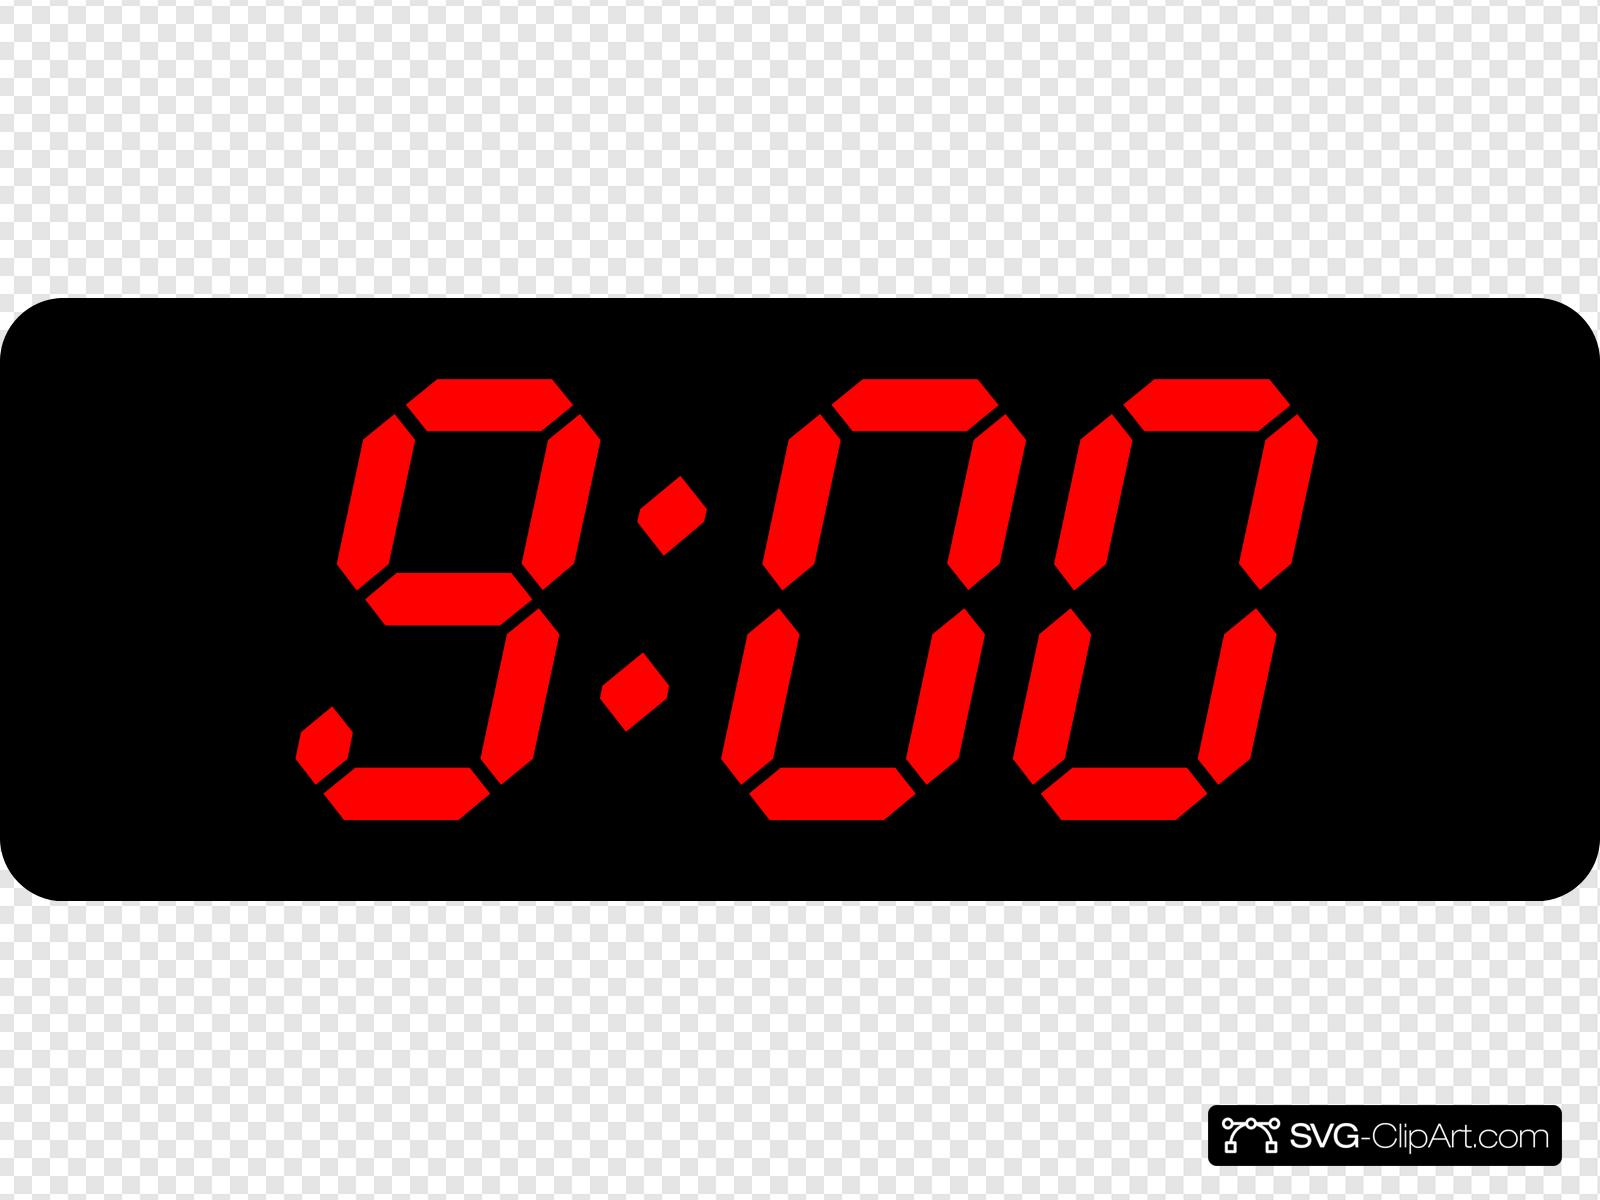 9:00 Black Red Clip art, Icon and SVG.